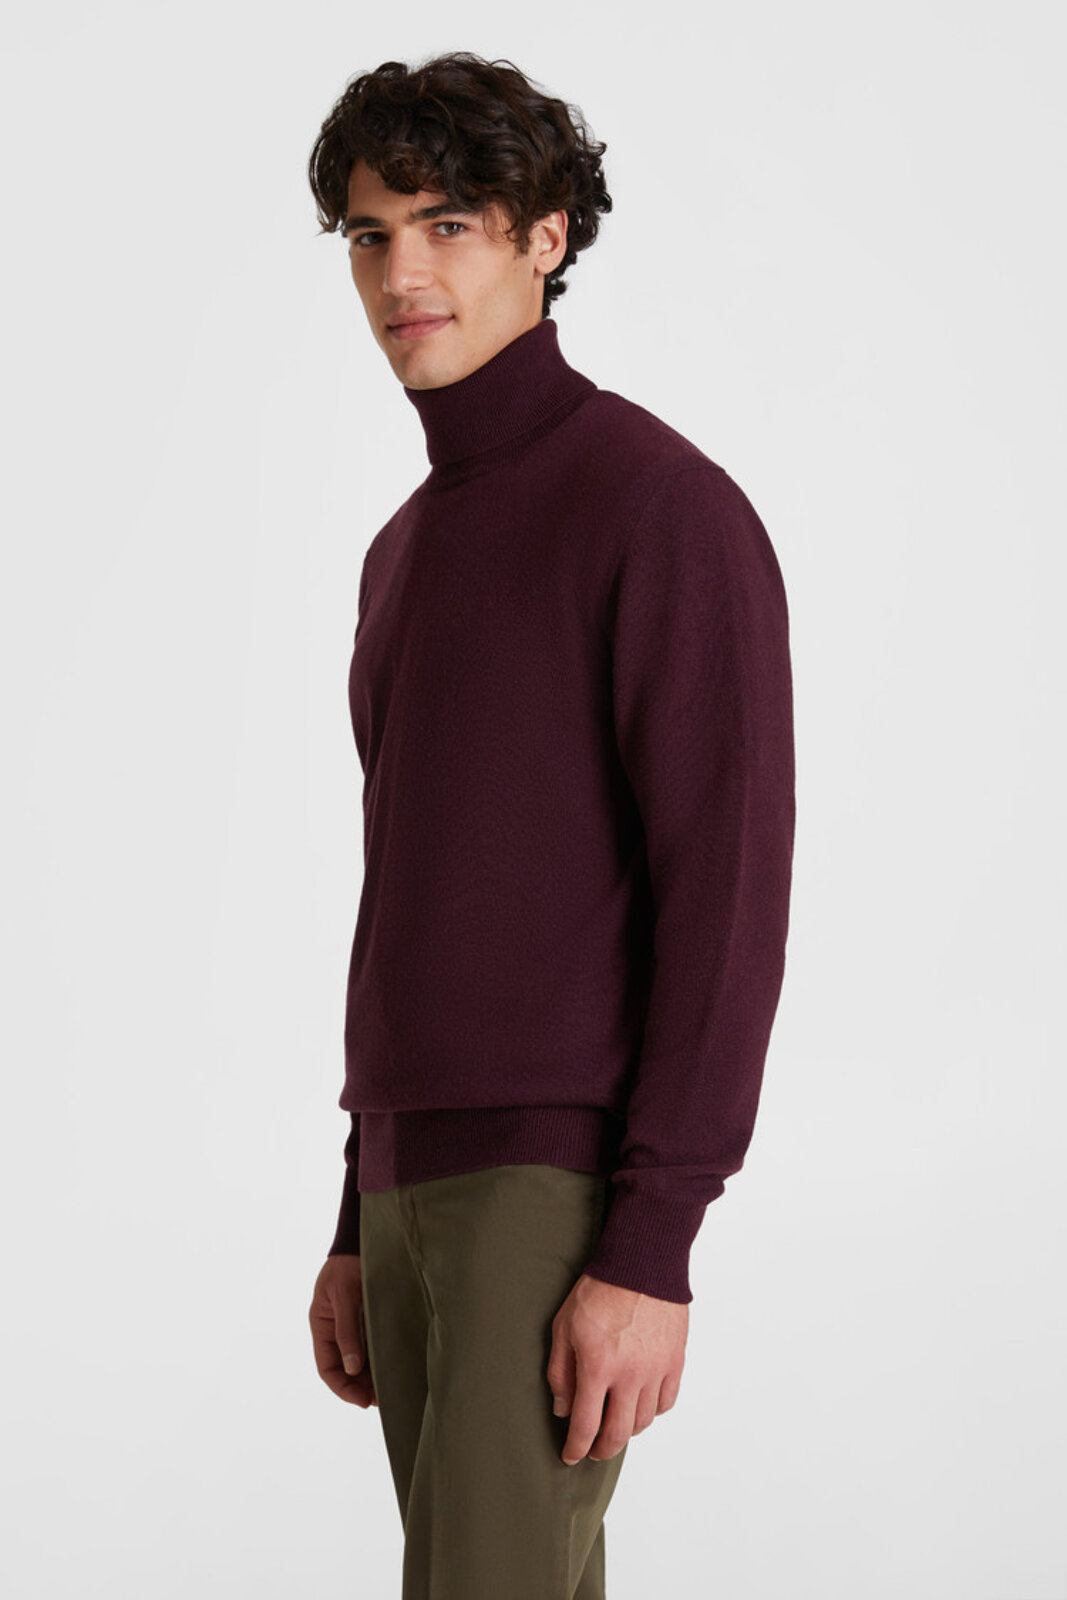 Turtleneck Wool Sweater - Woolrich